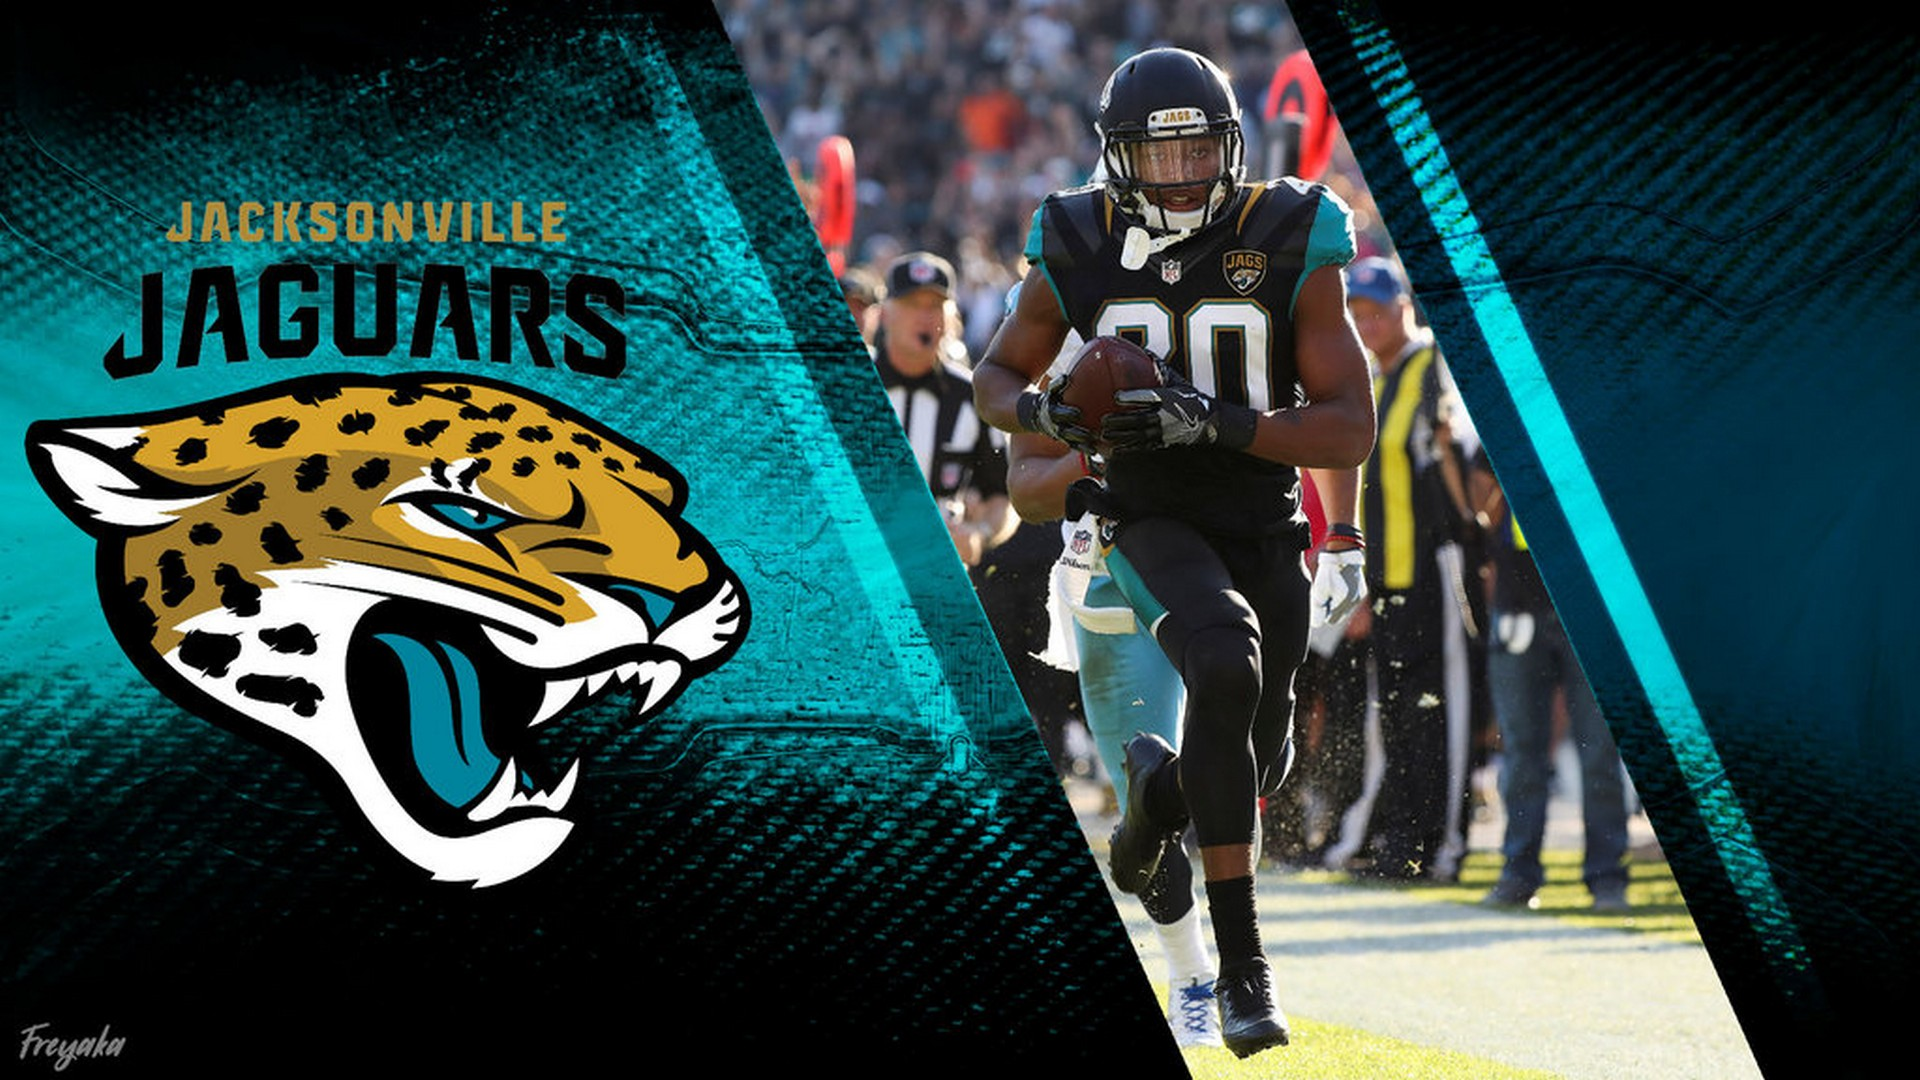 Jacksonville Jaguars For Desktop Wallpaper 2019 NFL Football 1920x1080